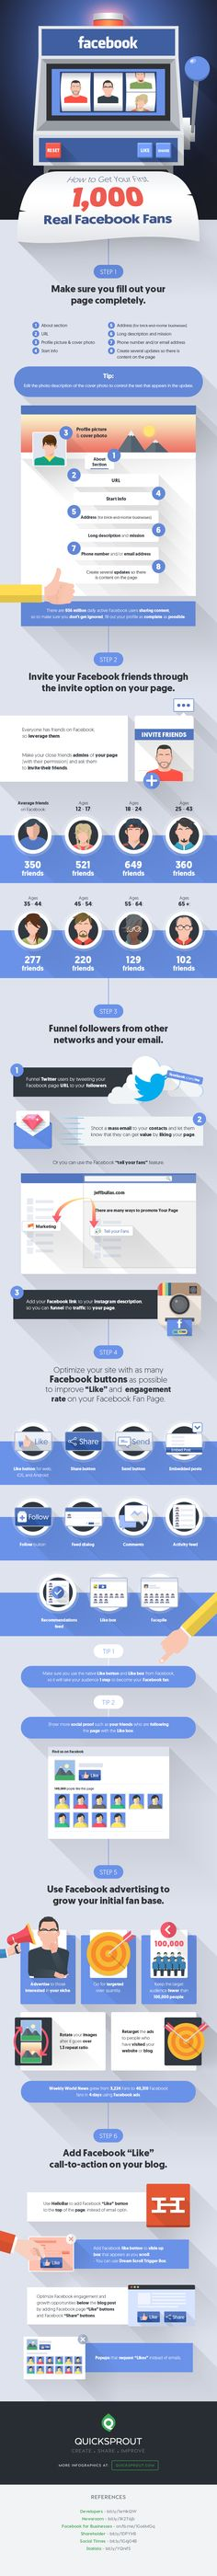 #infographic: How to Get Your First 1000 Facebook Fans | #socialmedia #Facebook